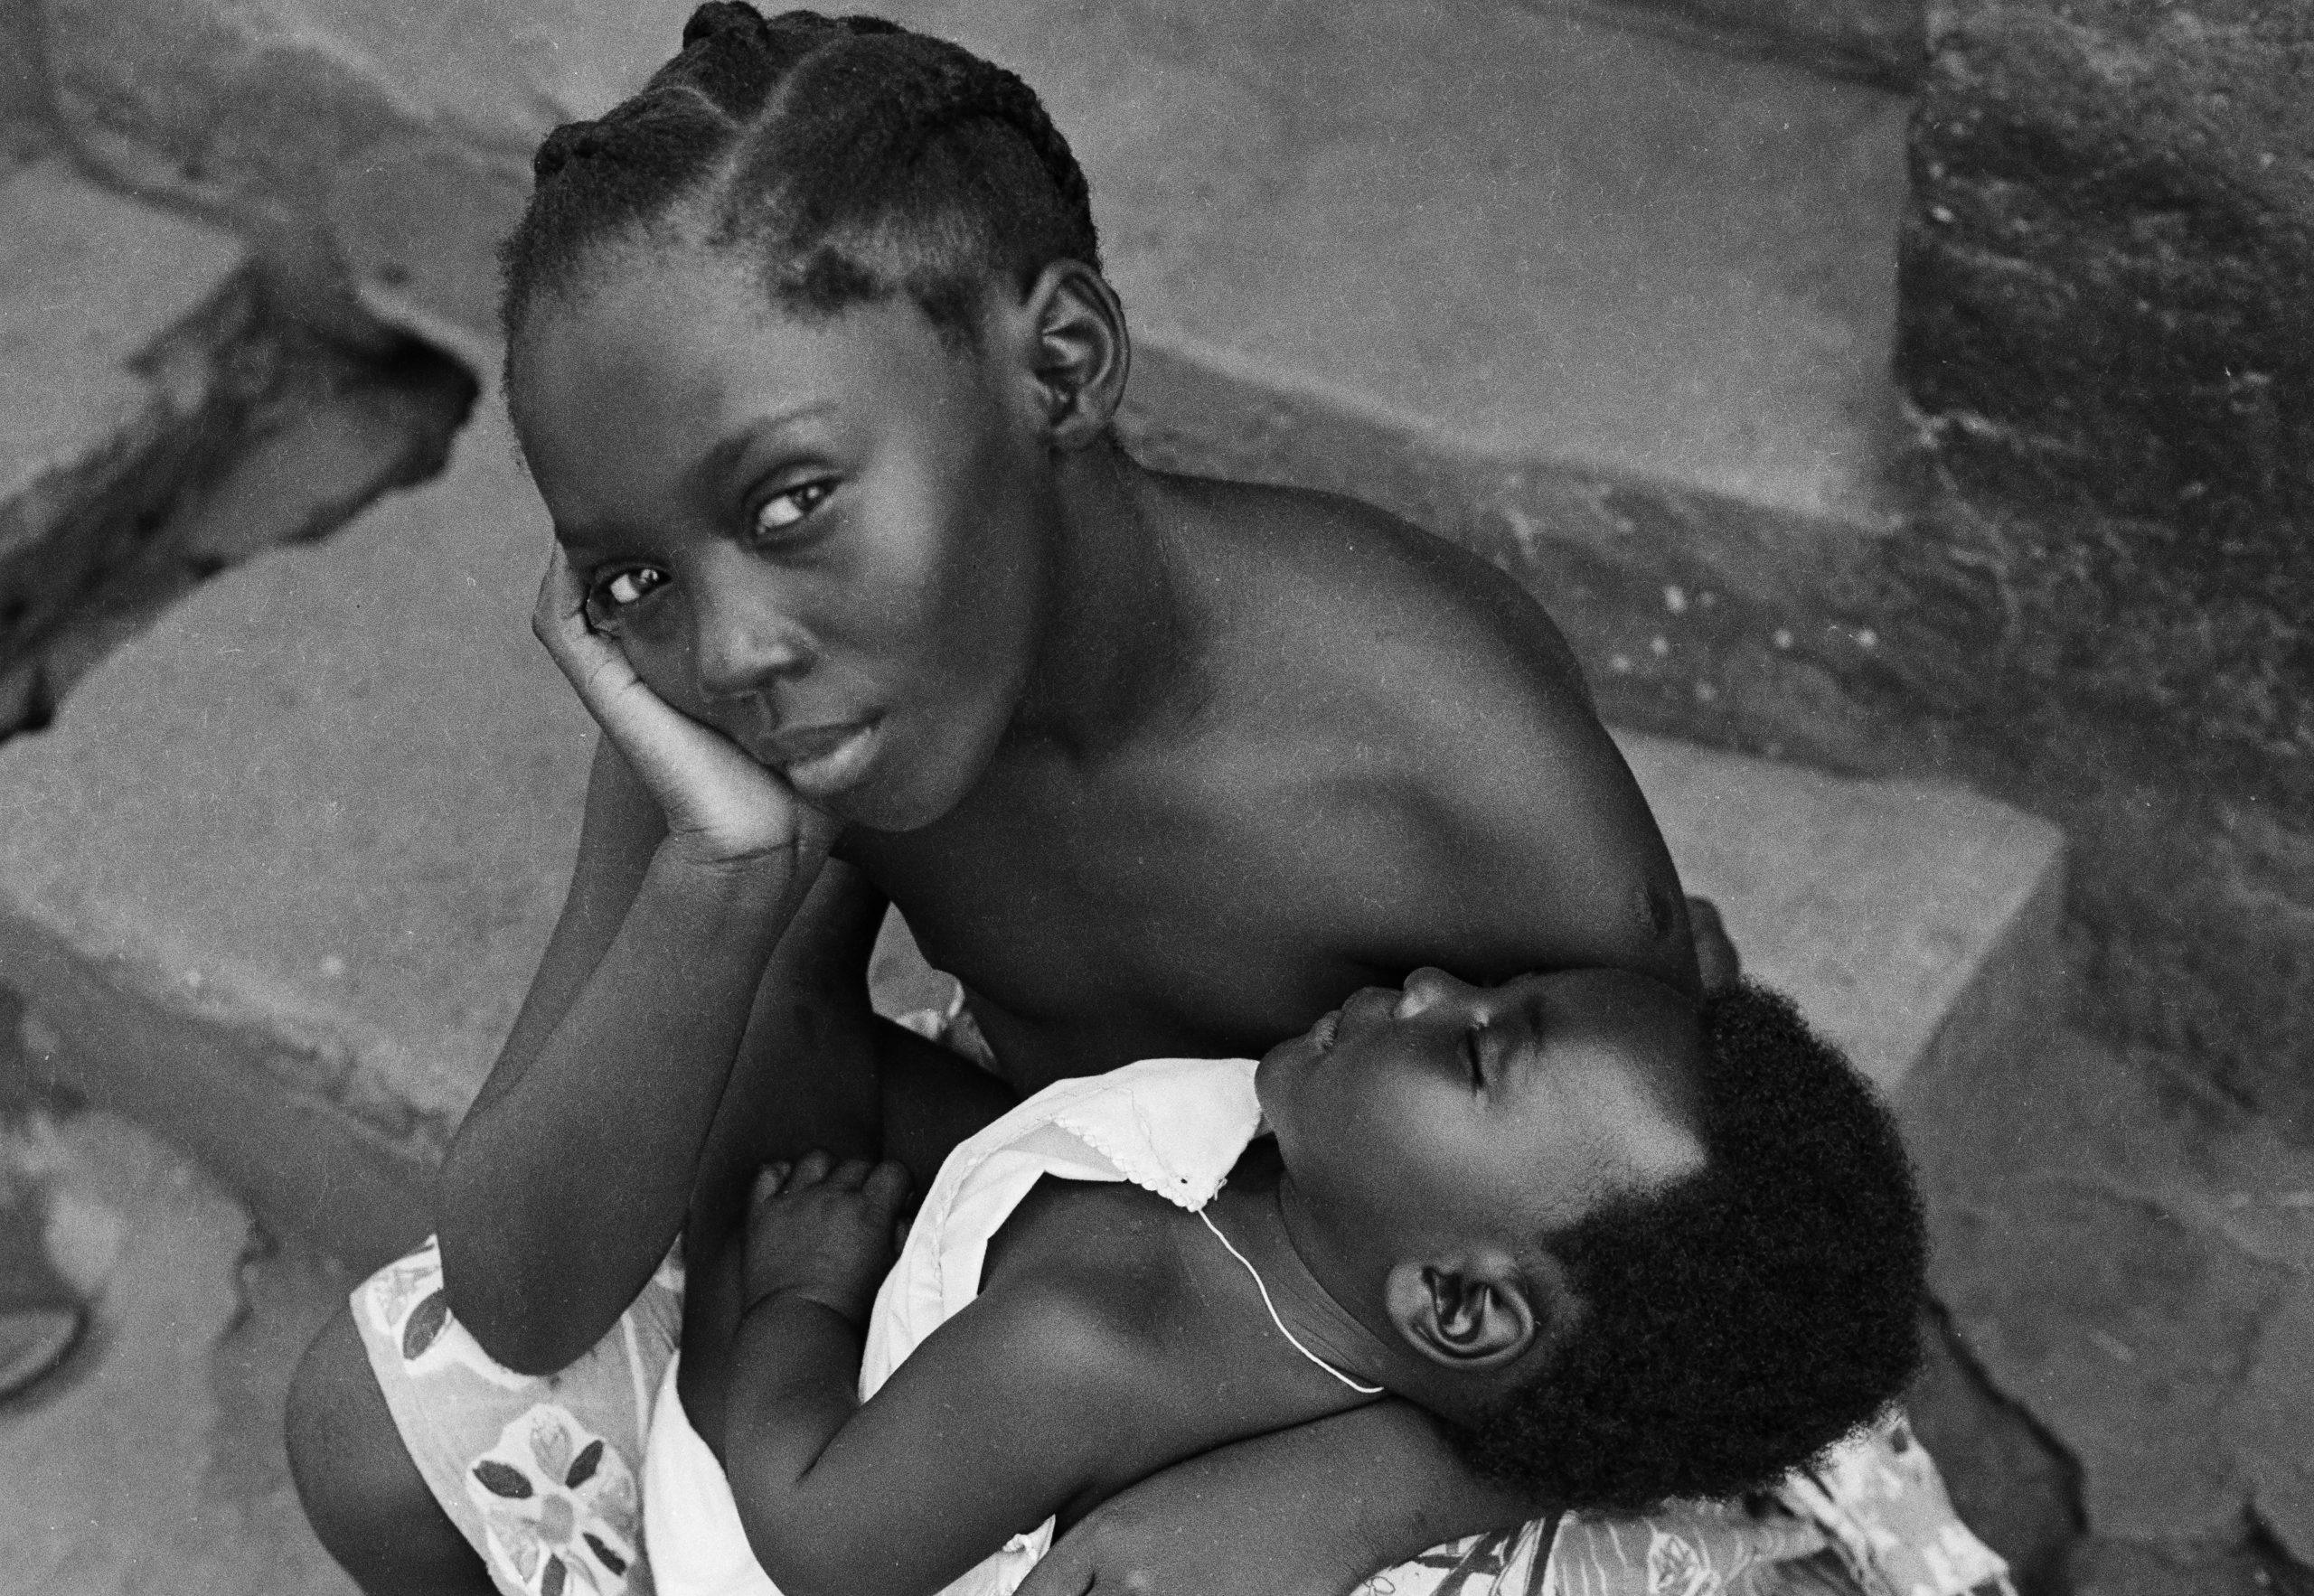 Photo: Sister holding Brother, Accra.